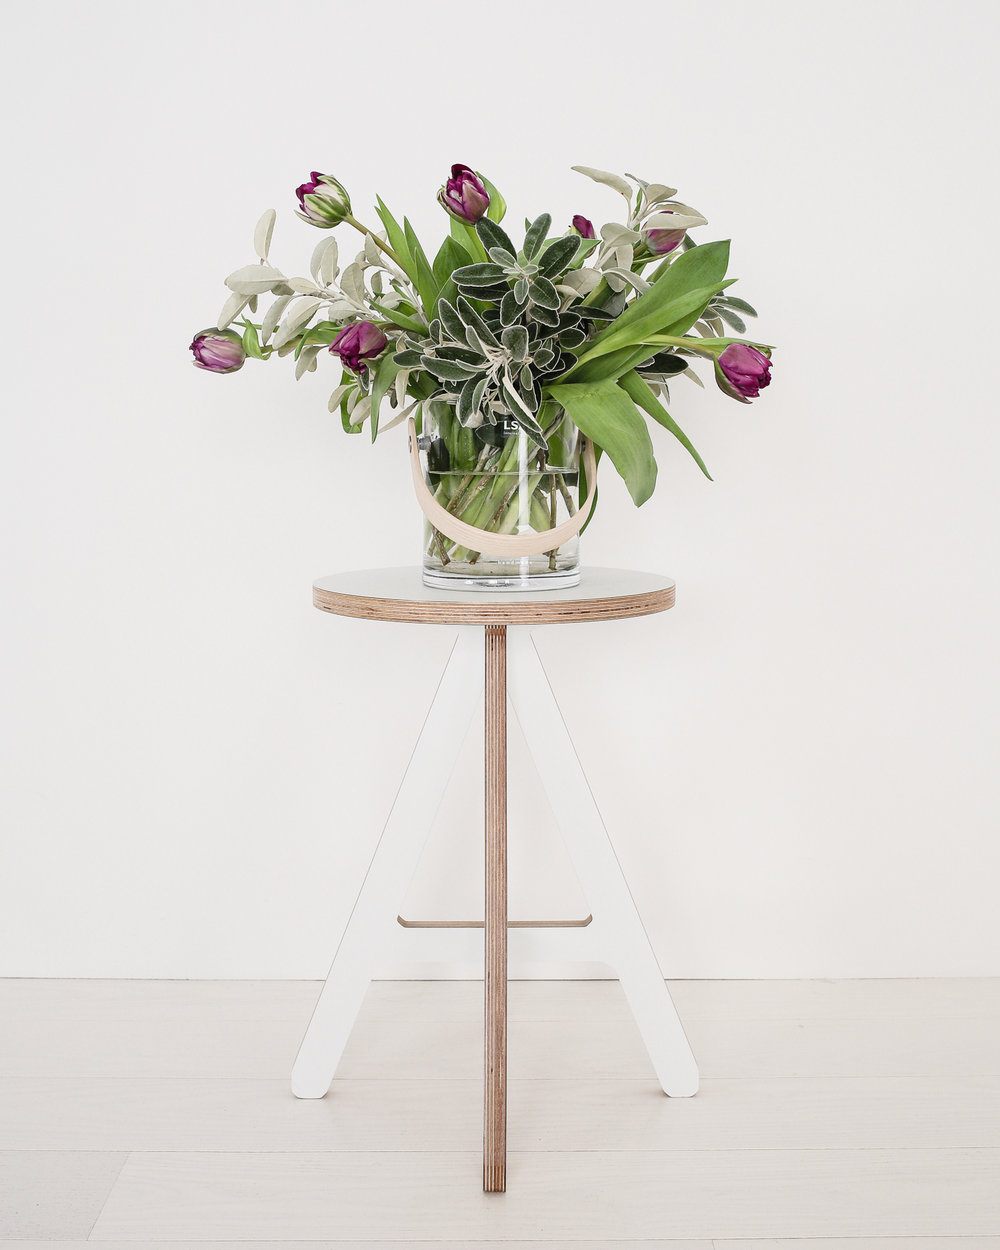 Tulips on white ByAlex stool | Design Hunter